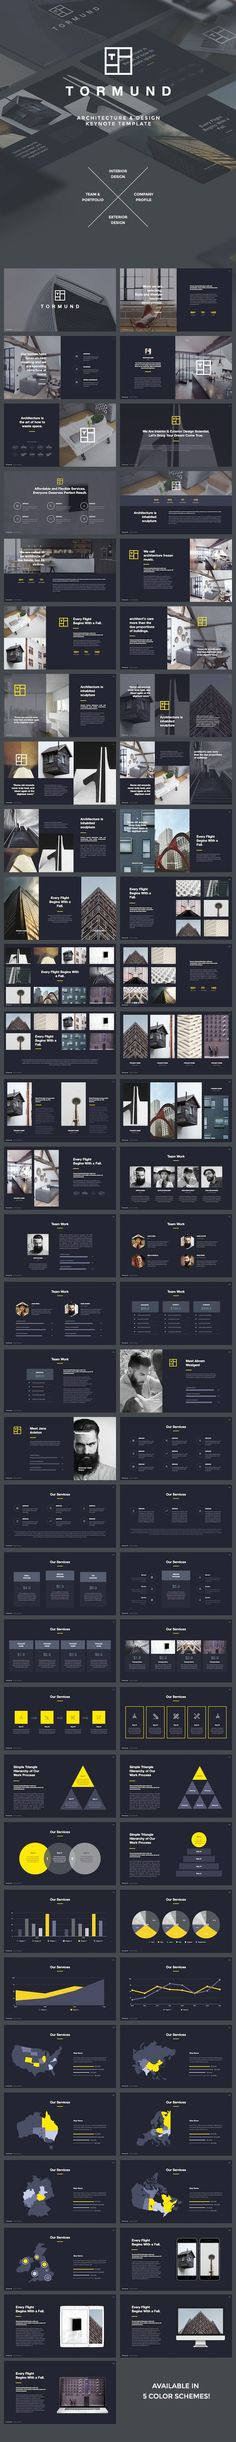 Thormund  Design & Portfolio Keynote Template  #slidehack.com • Download ➝ https://graphicriver.net/item/thormund-design-portfolio-keynote-template/18421151?ref=pxcr